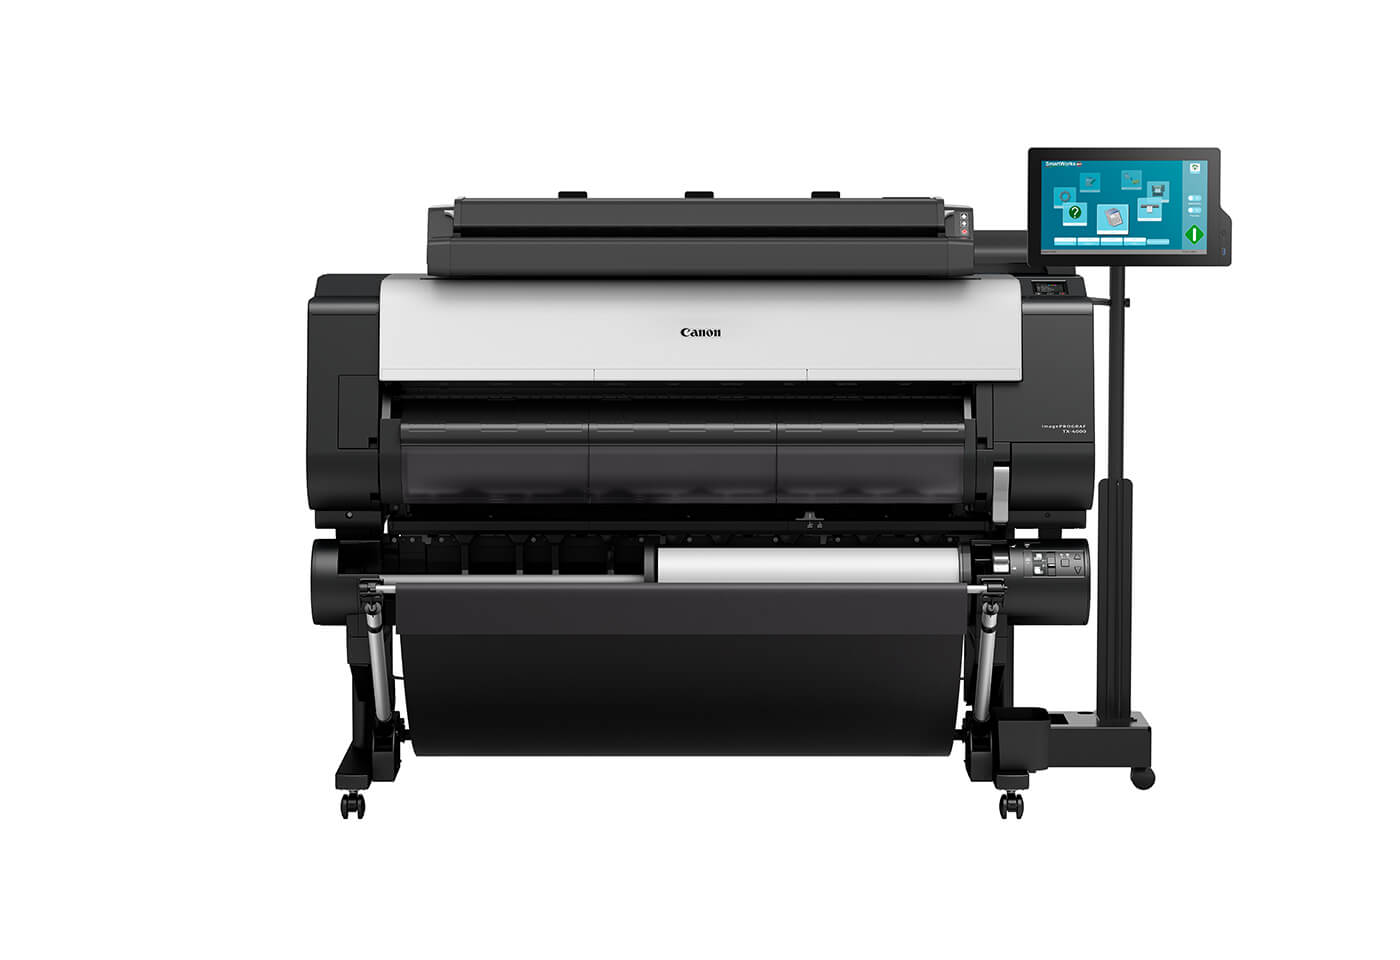 TX 4000 MFP front image